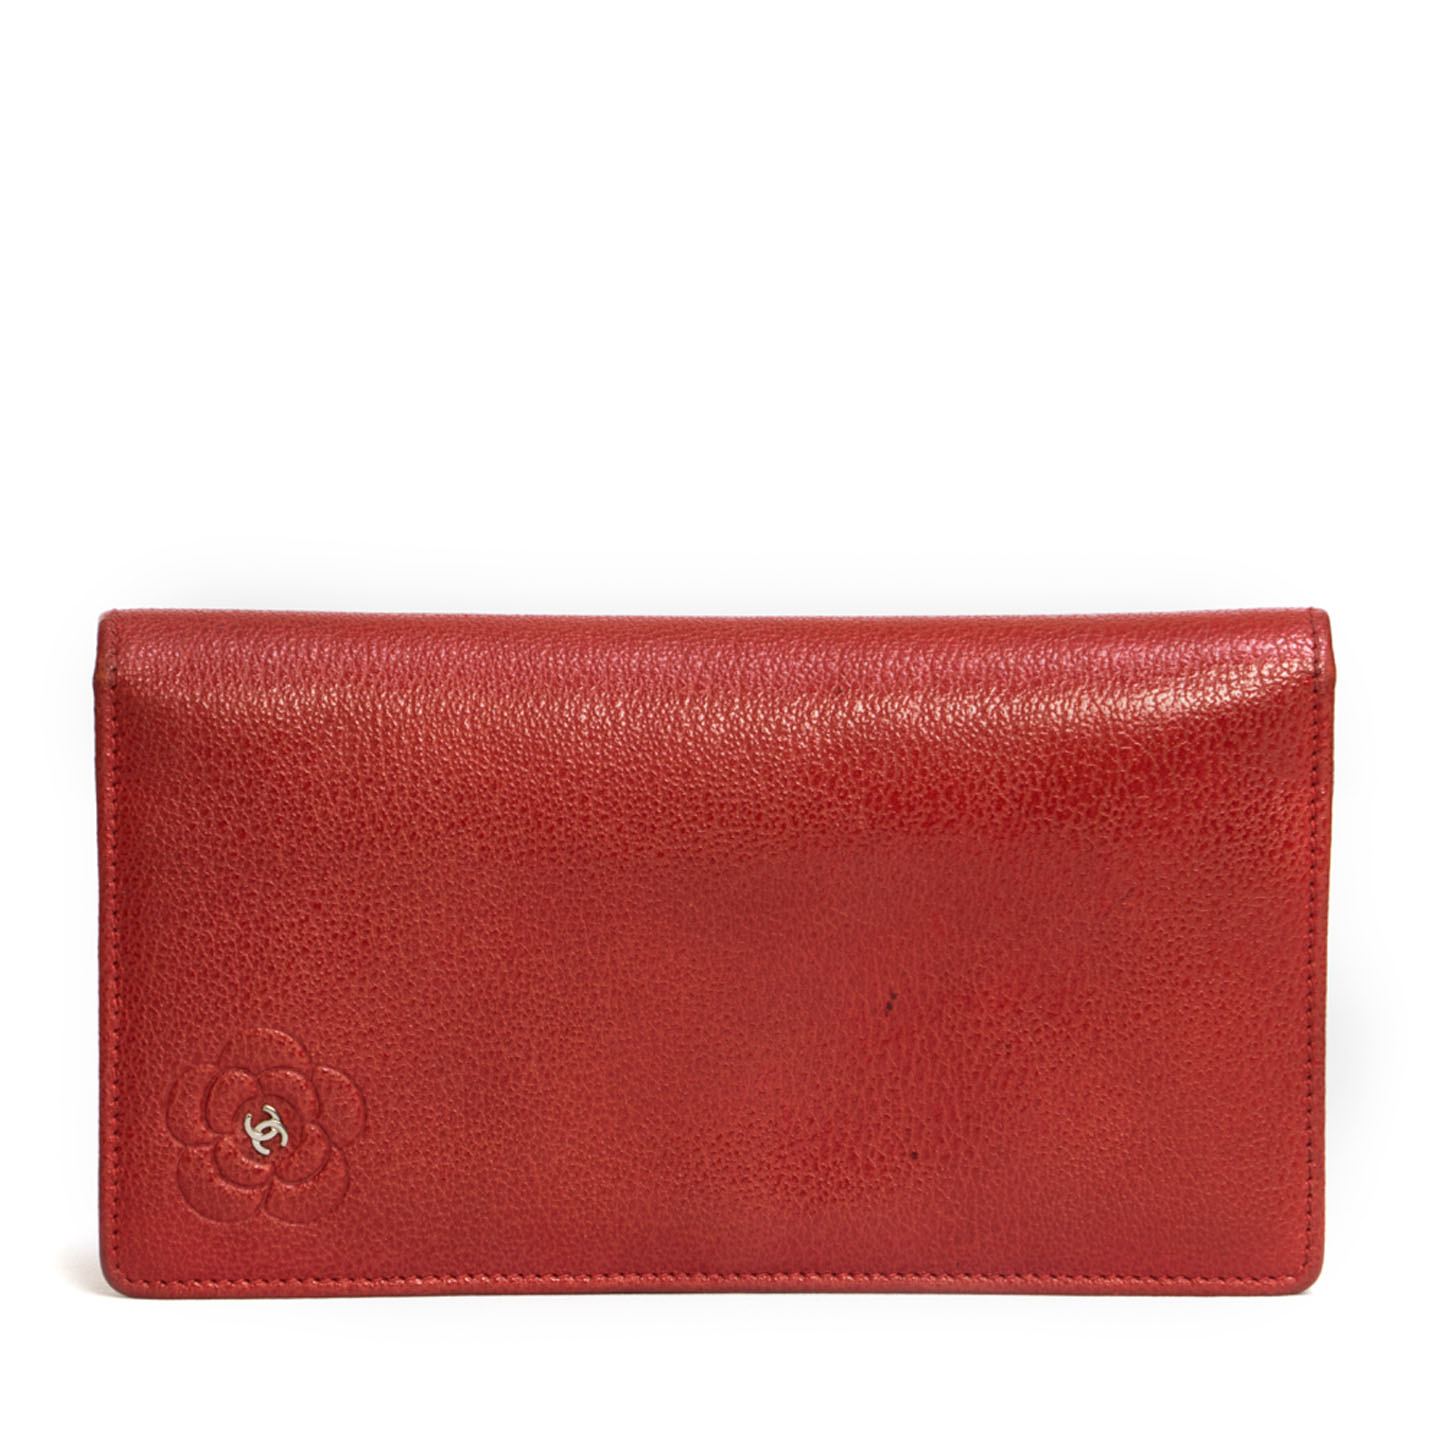 Chanel Red Camellia Vertical Wallet-1